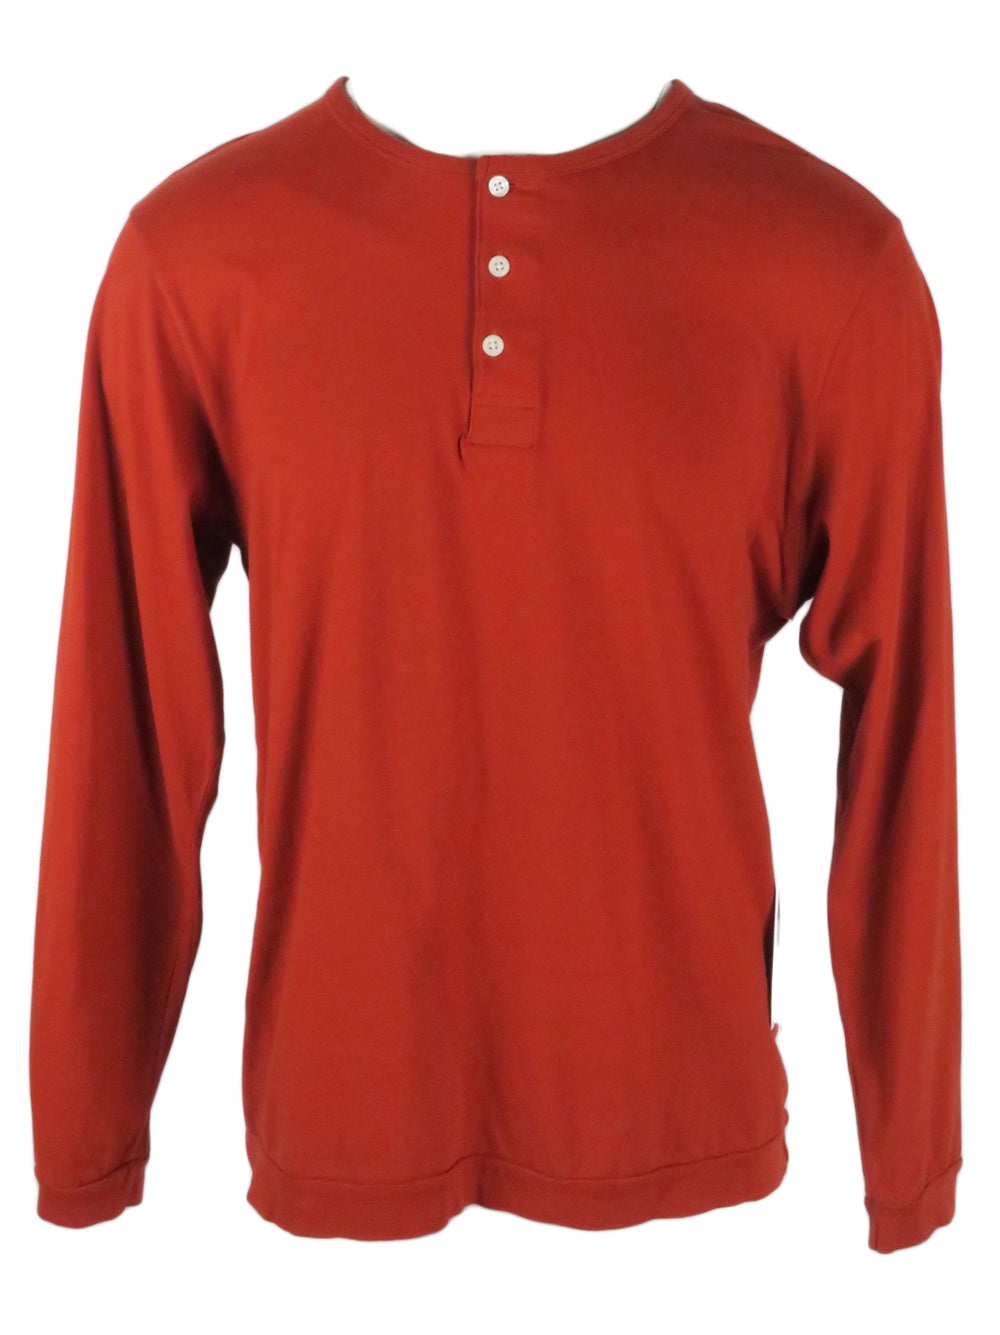 saturdays new york city brick red 'mitch' long sleeve henley shirt. features 'saturdays new york city' embossed at font left above hem. three button placket.